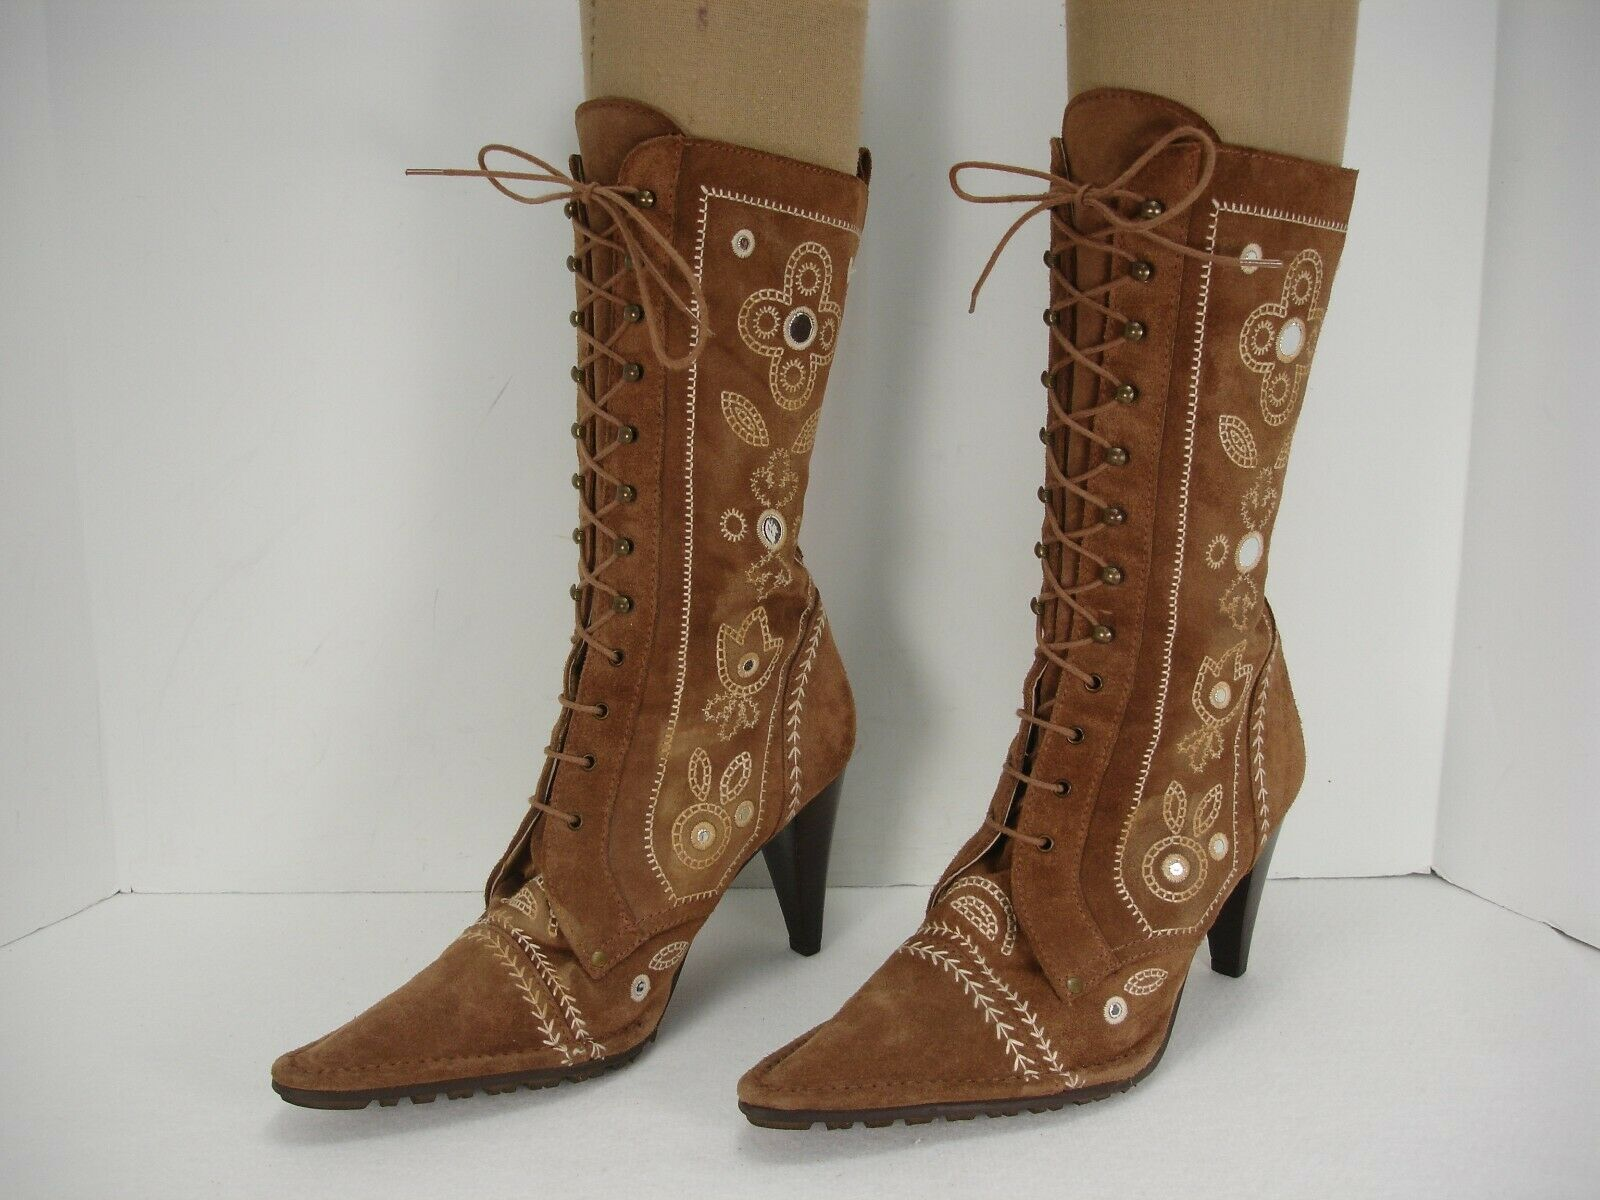 RAS BROWN DISTRESSED SUEDE EMBROIDERED LACE FRONT HIGH HEEL BOOTS WOMEN'S 38